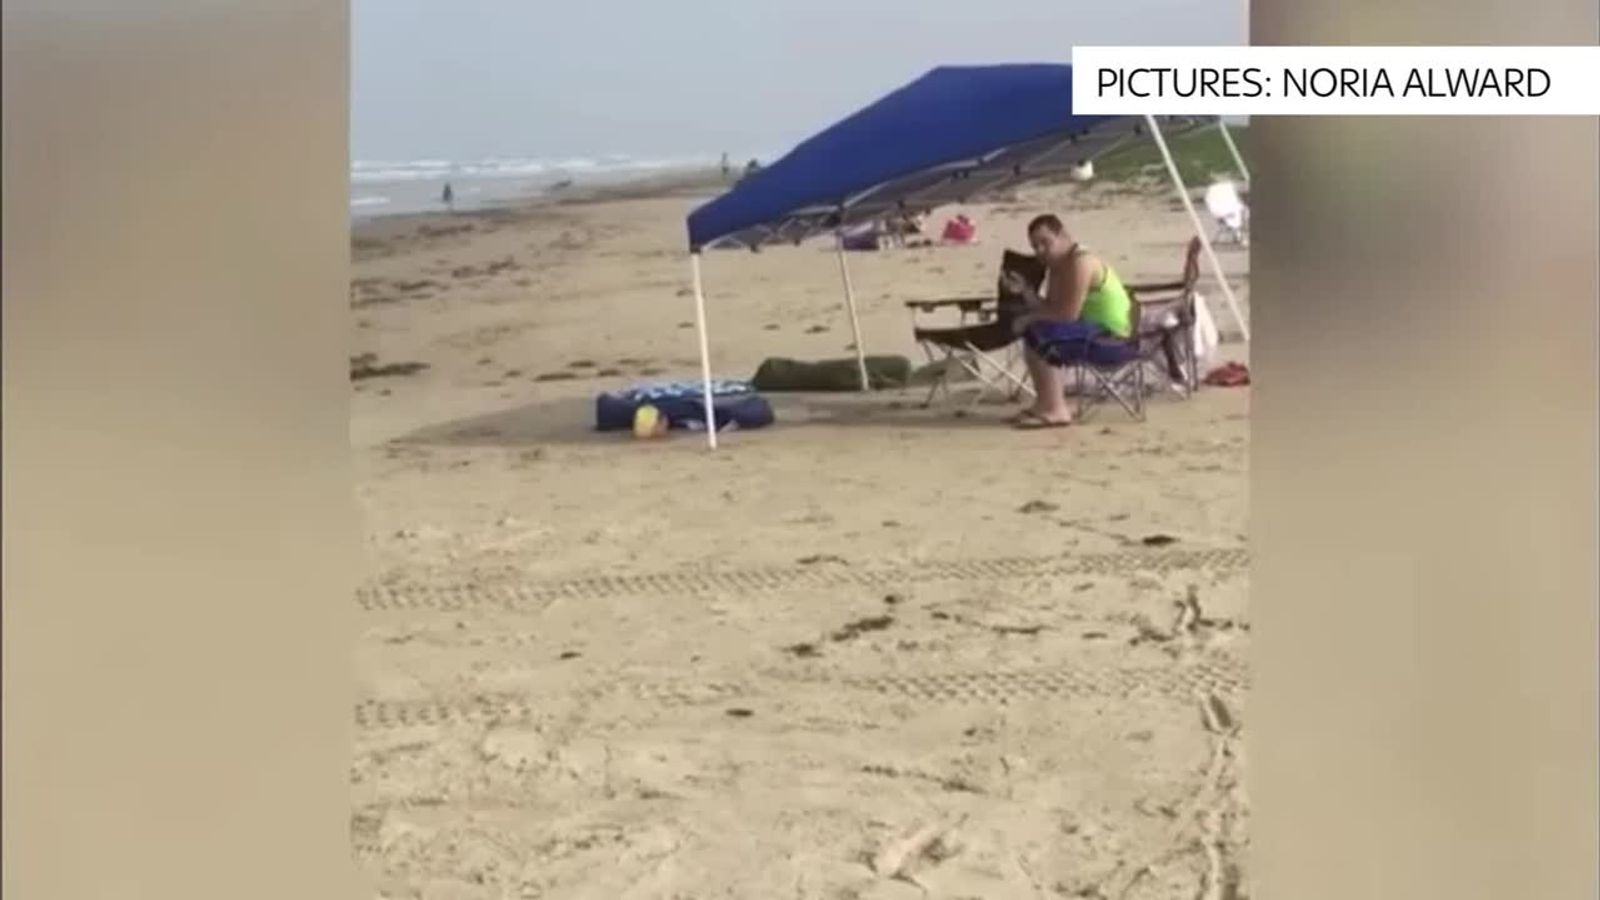 Man arrested for racist rant on beach